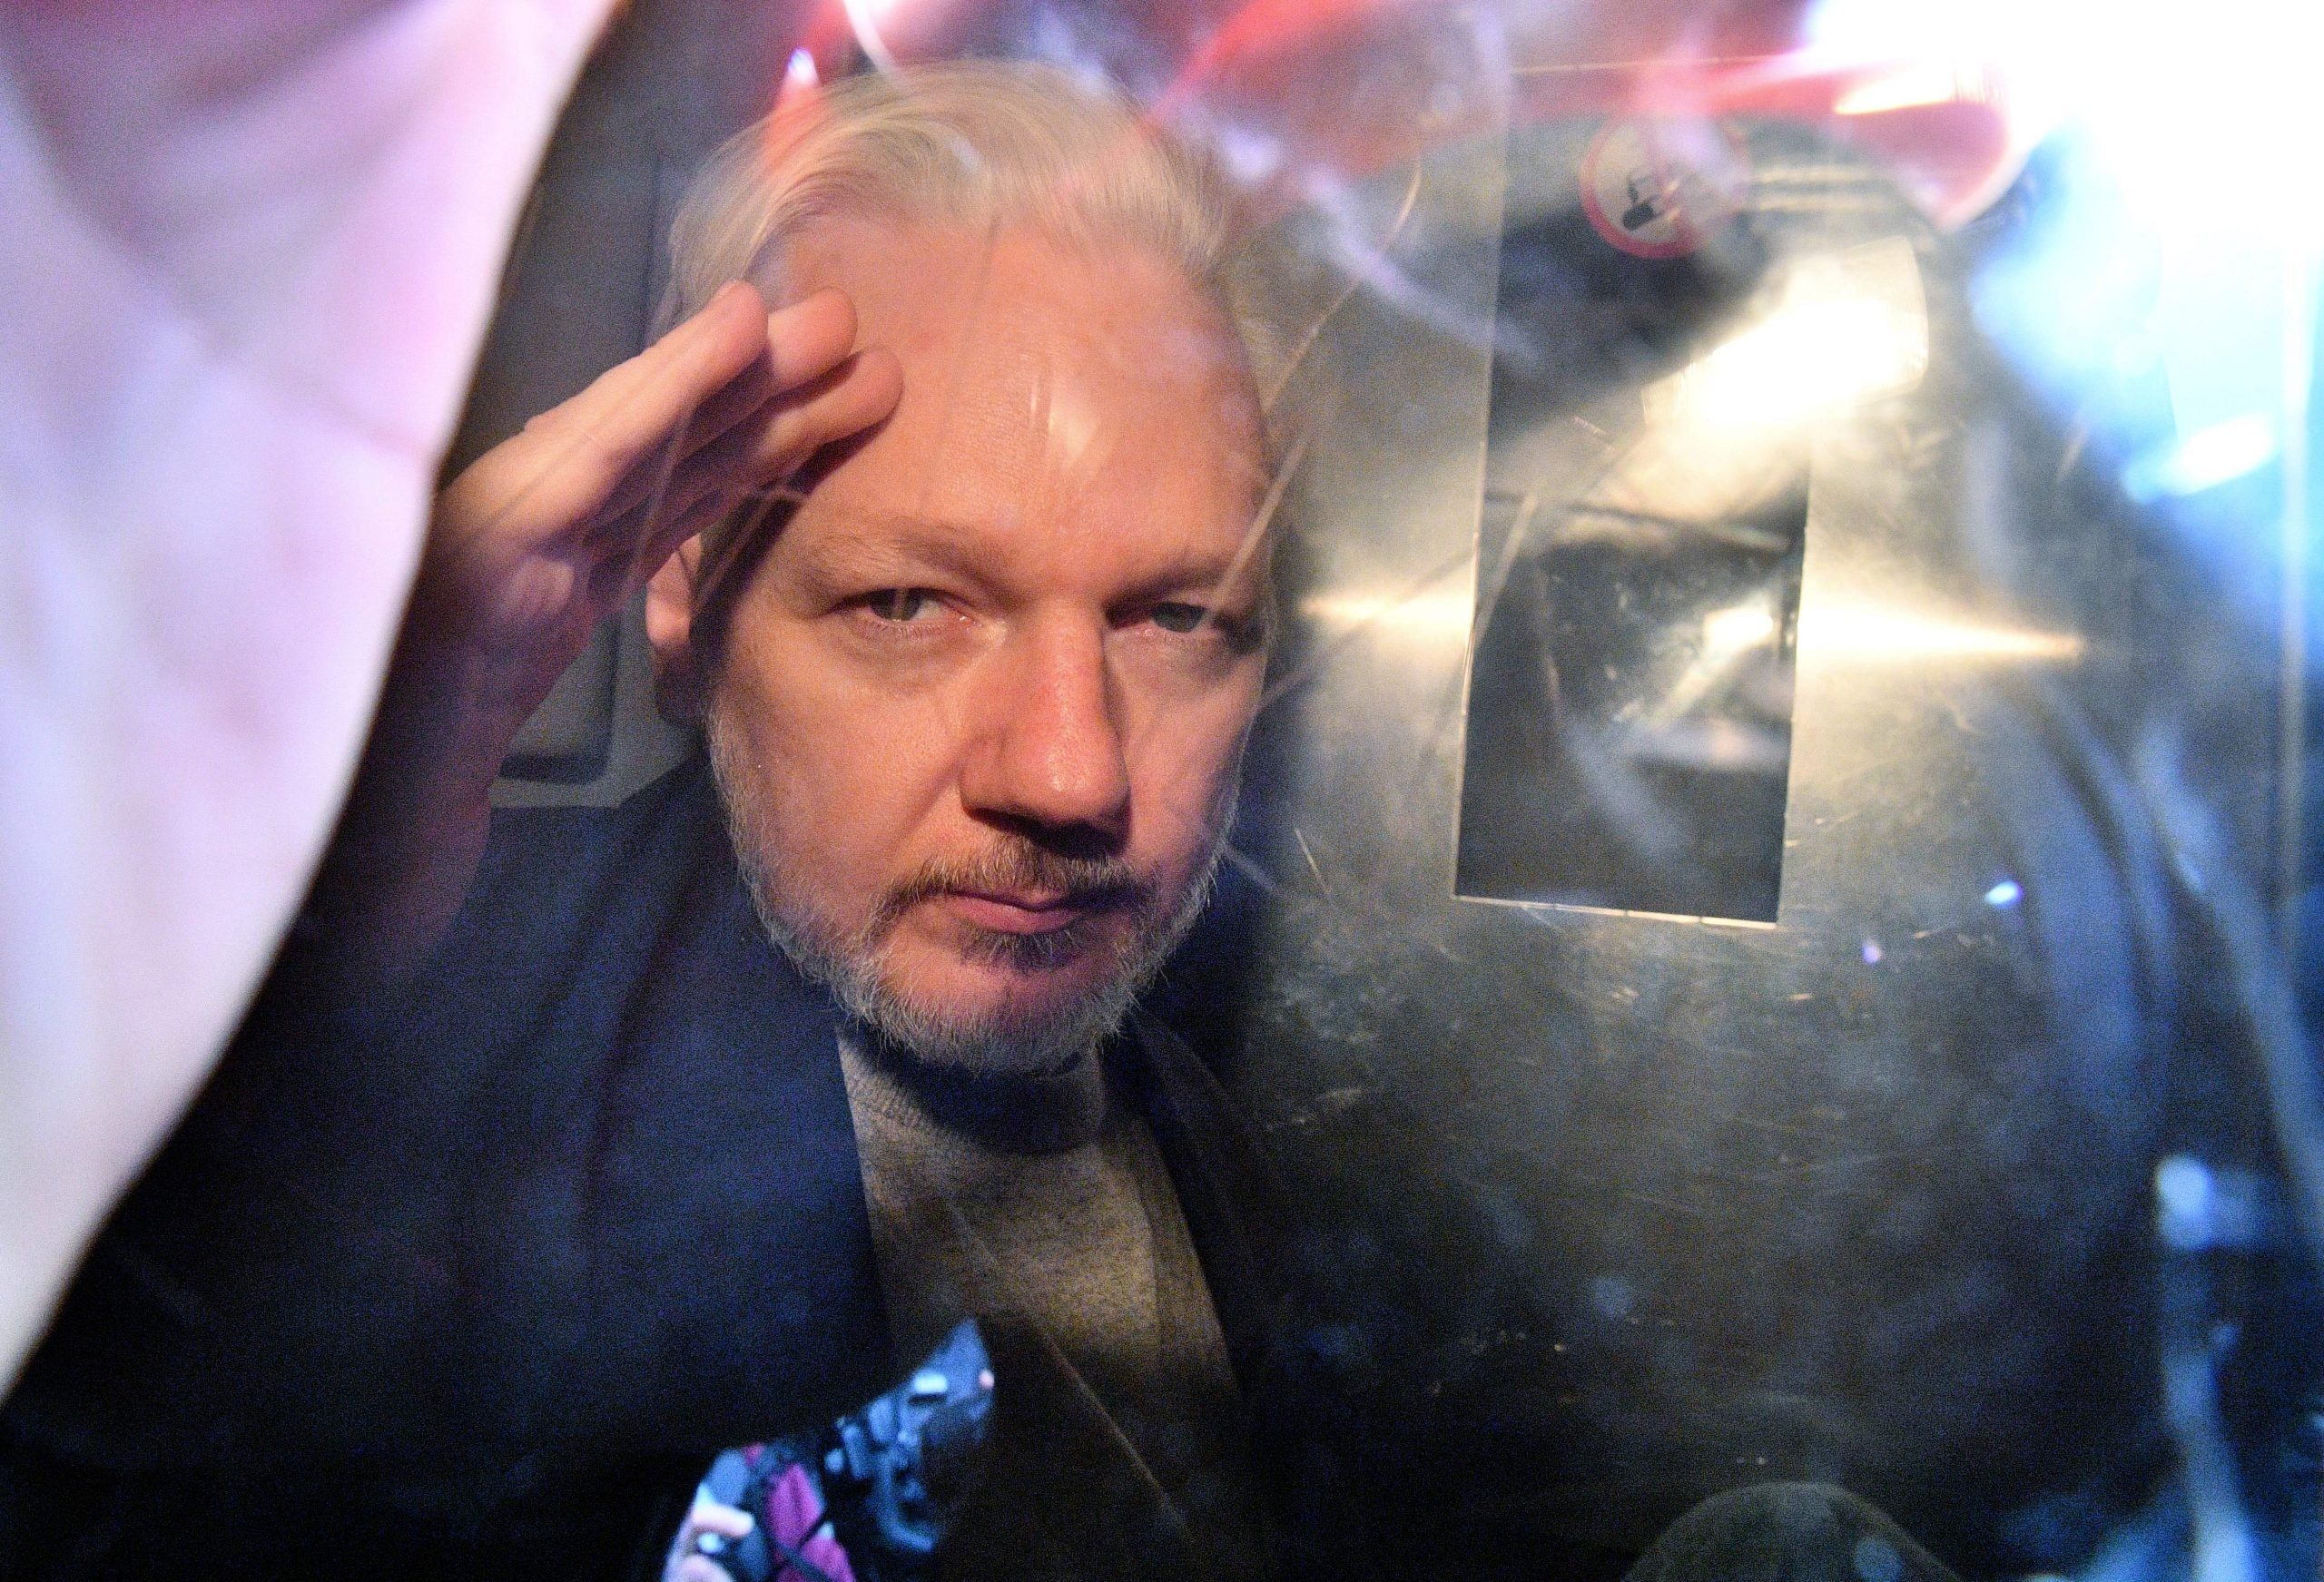 Sweden re-opens inquiry made against Julian Assange